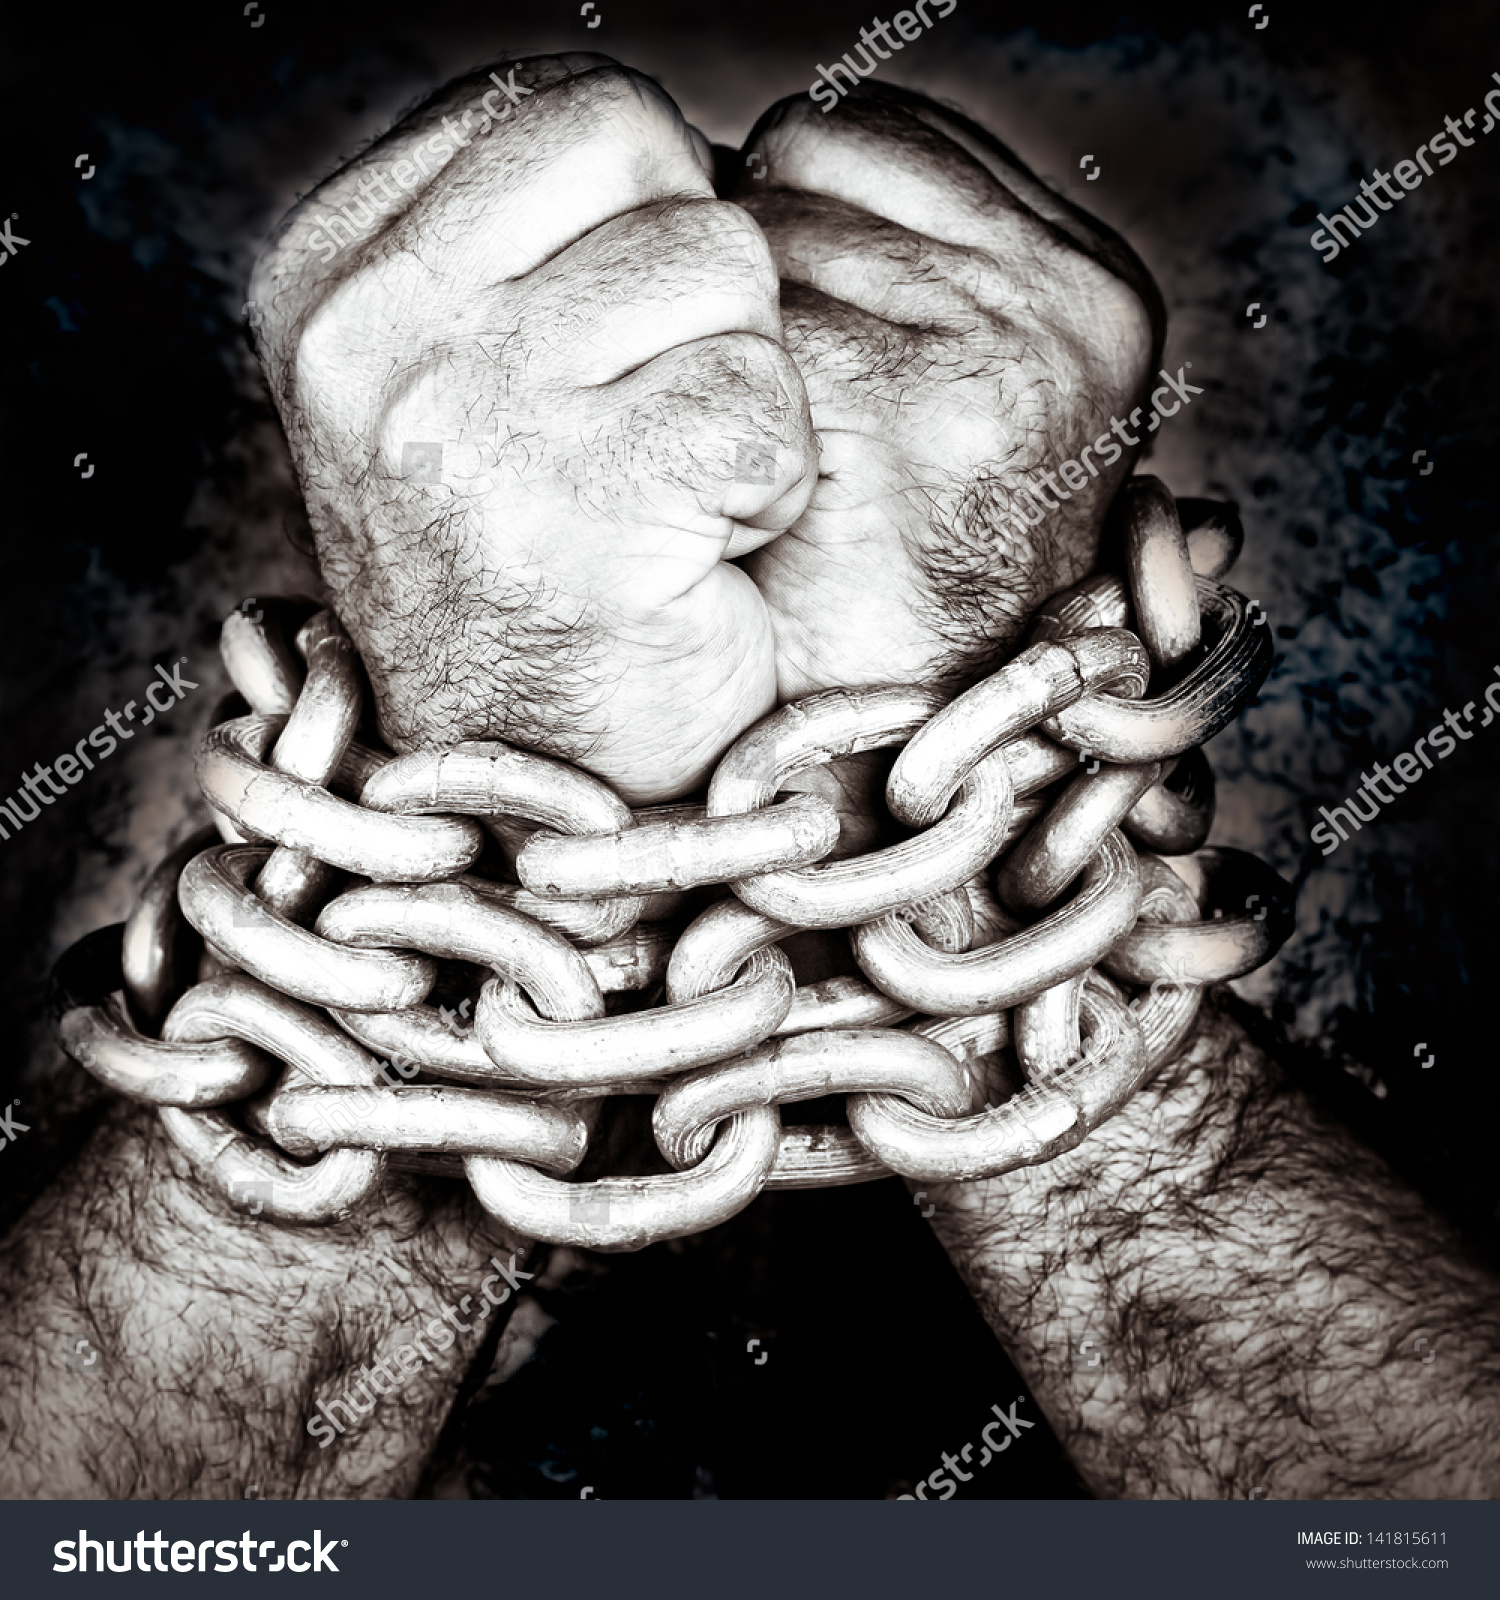 Black And White Pictures Of People In Chains Pictures to ...